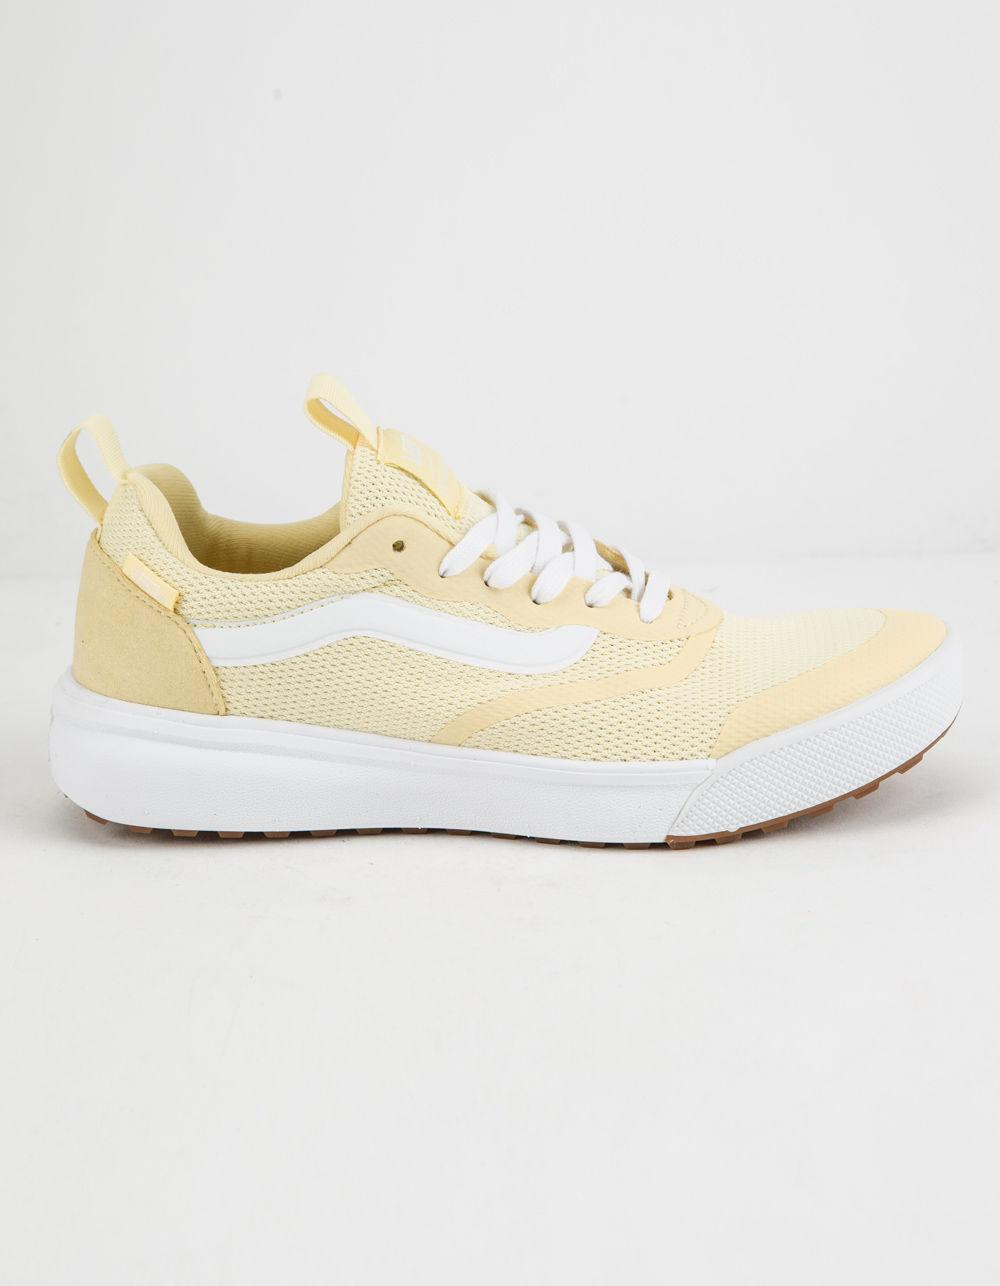 Vans ULTRARANGE women's Shoes (Trainers) in Quality For Sale Free Shipping Cheap Pay With Paypal Discount Amazing Price mRsrA